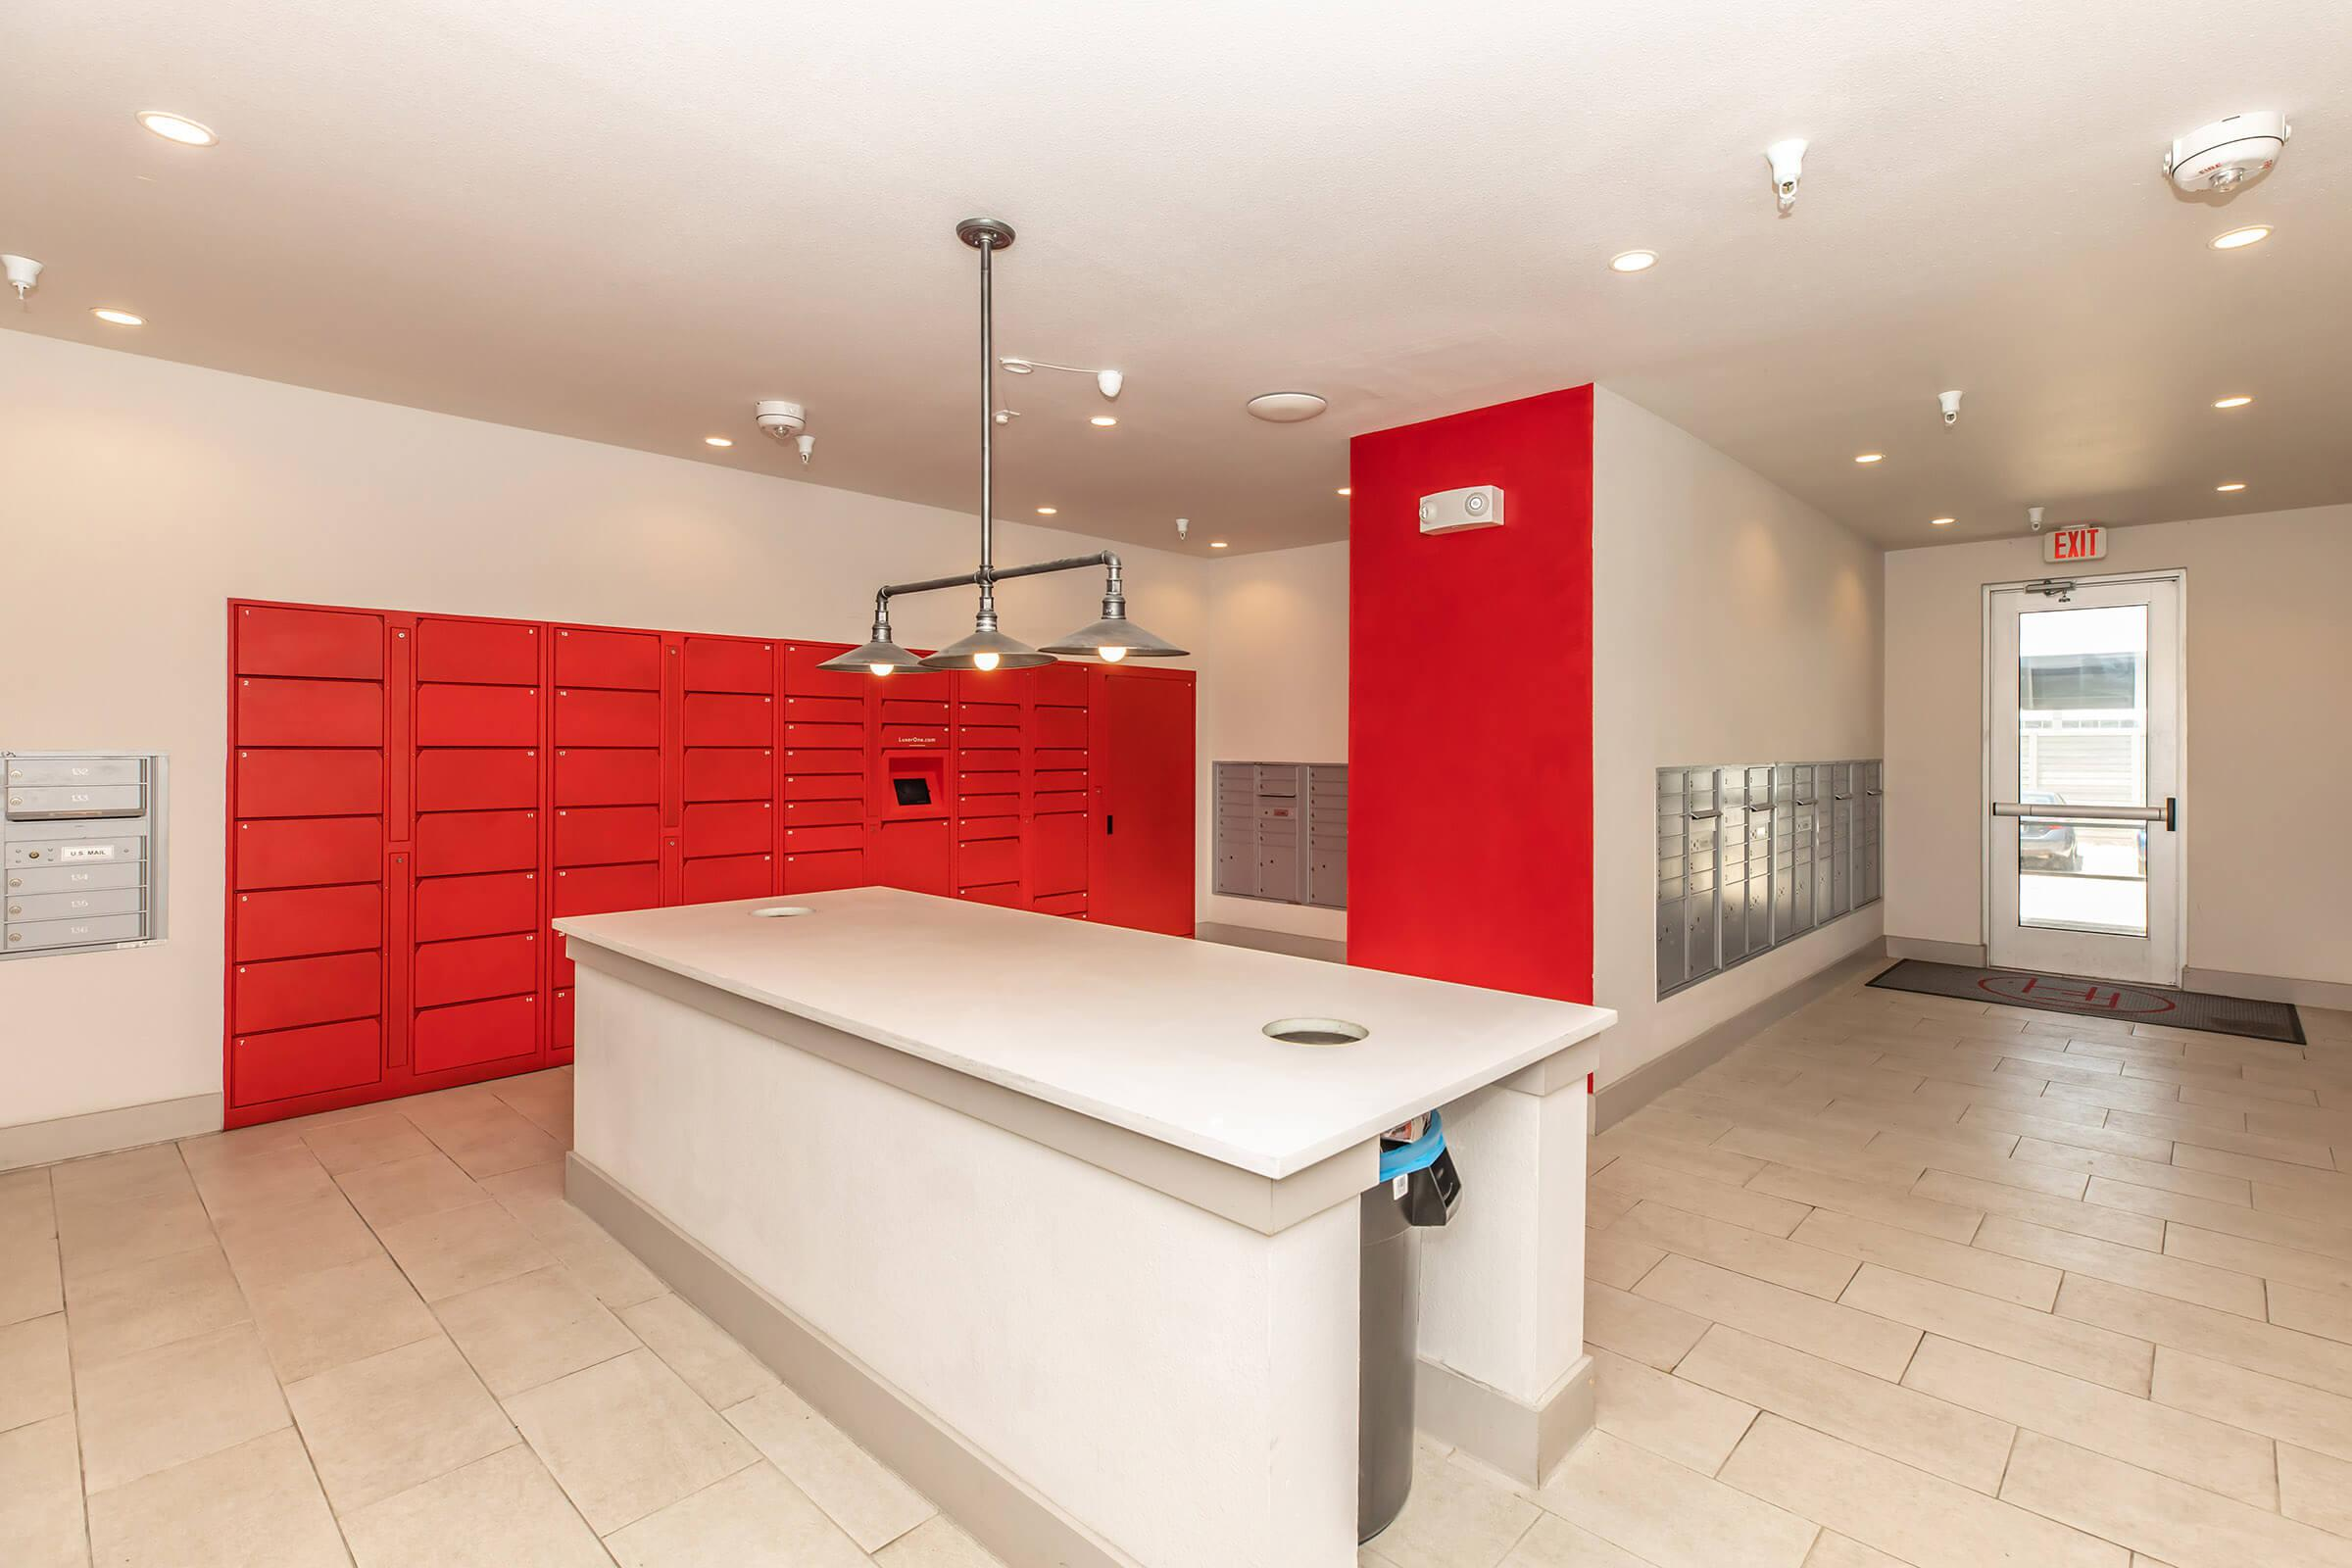 a kitchen with red floor